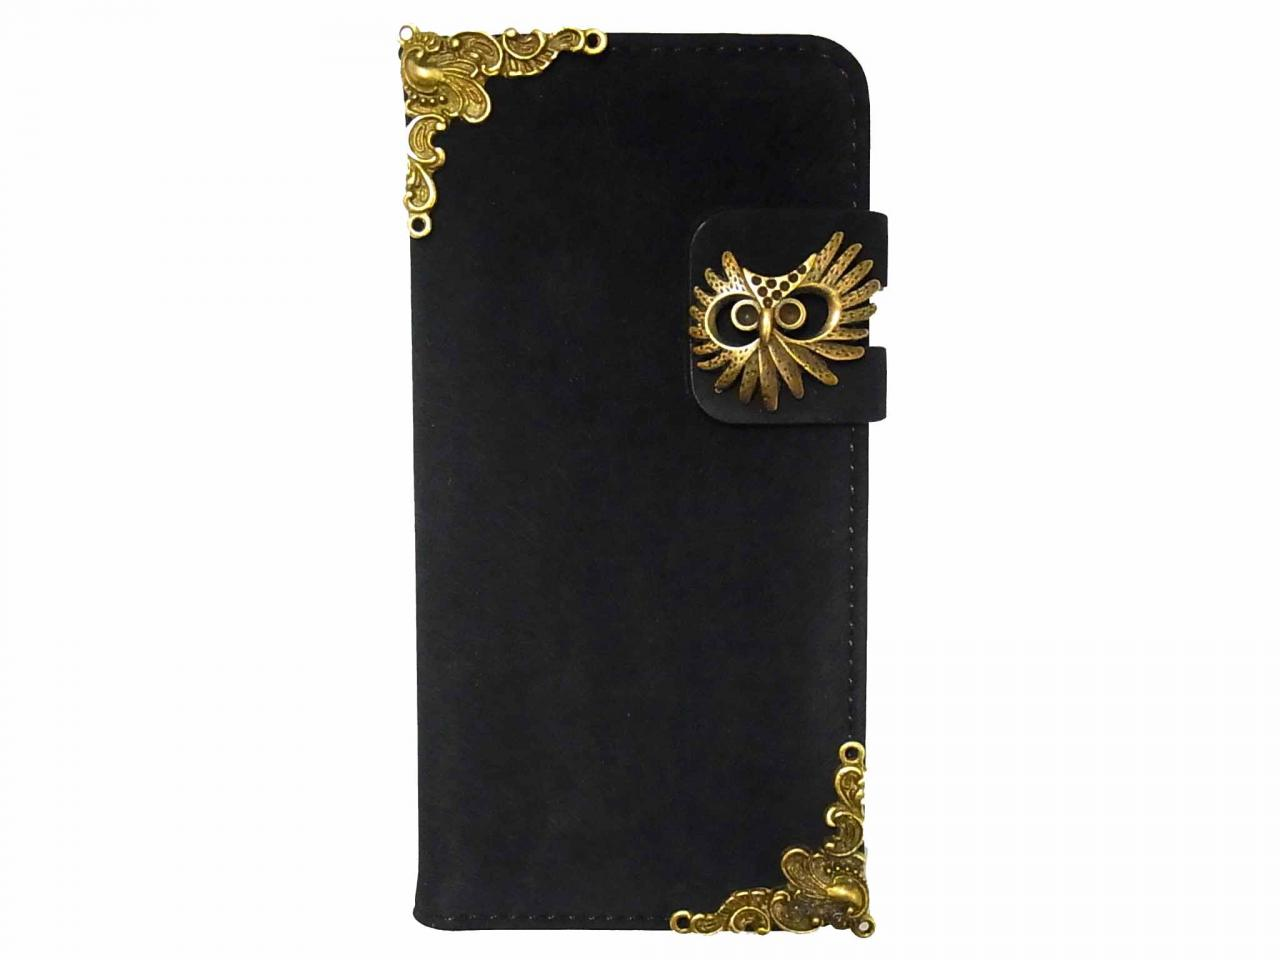 Owl iPhone 6 6s Wallet case,Vintage Velvet iphone 6 4.7 leather case,iphone 6 6s Flip Case,Victorian Vintage Velvet Owl iPhone 6 6s PLUS leather wallet case cover A2 Black